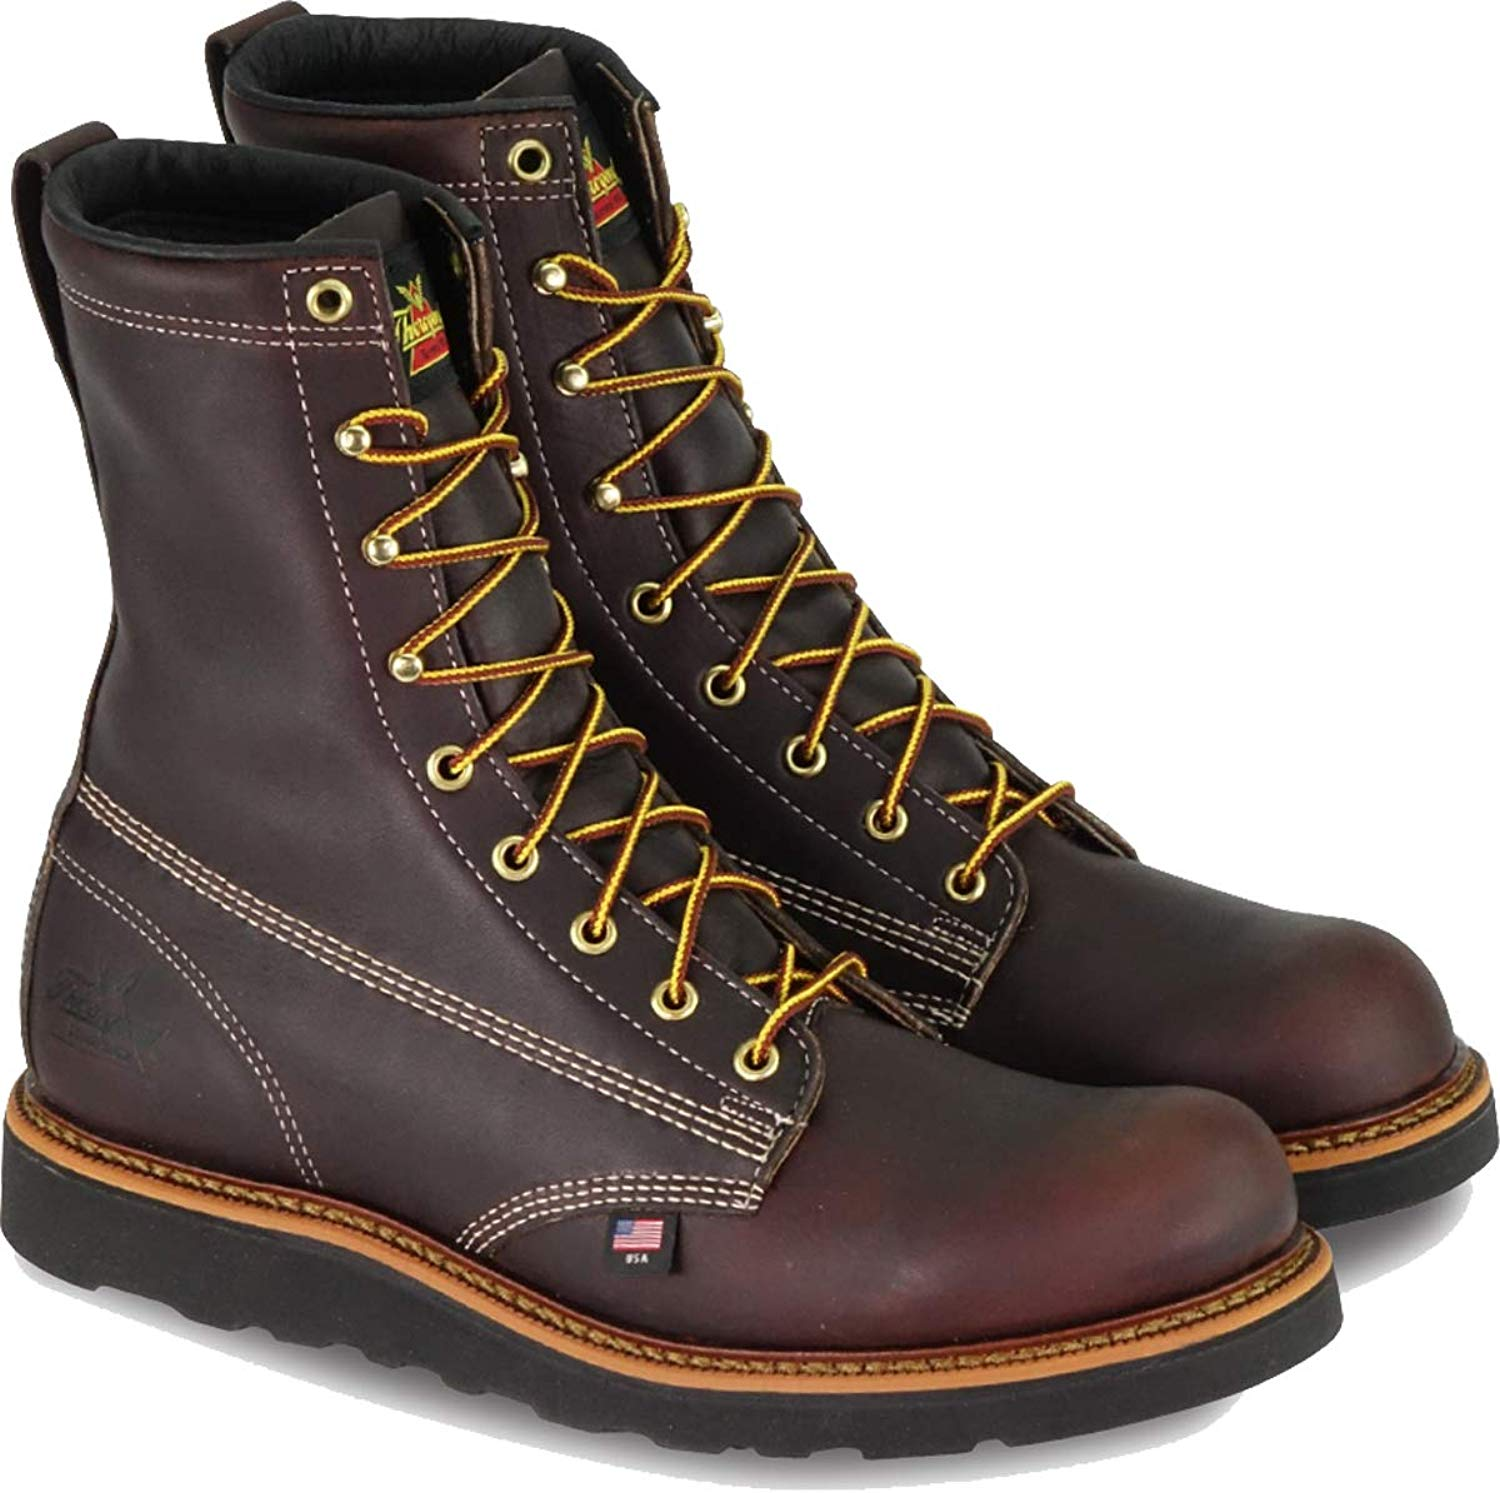 Round Toe Max Wedge Non-Safety Boots